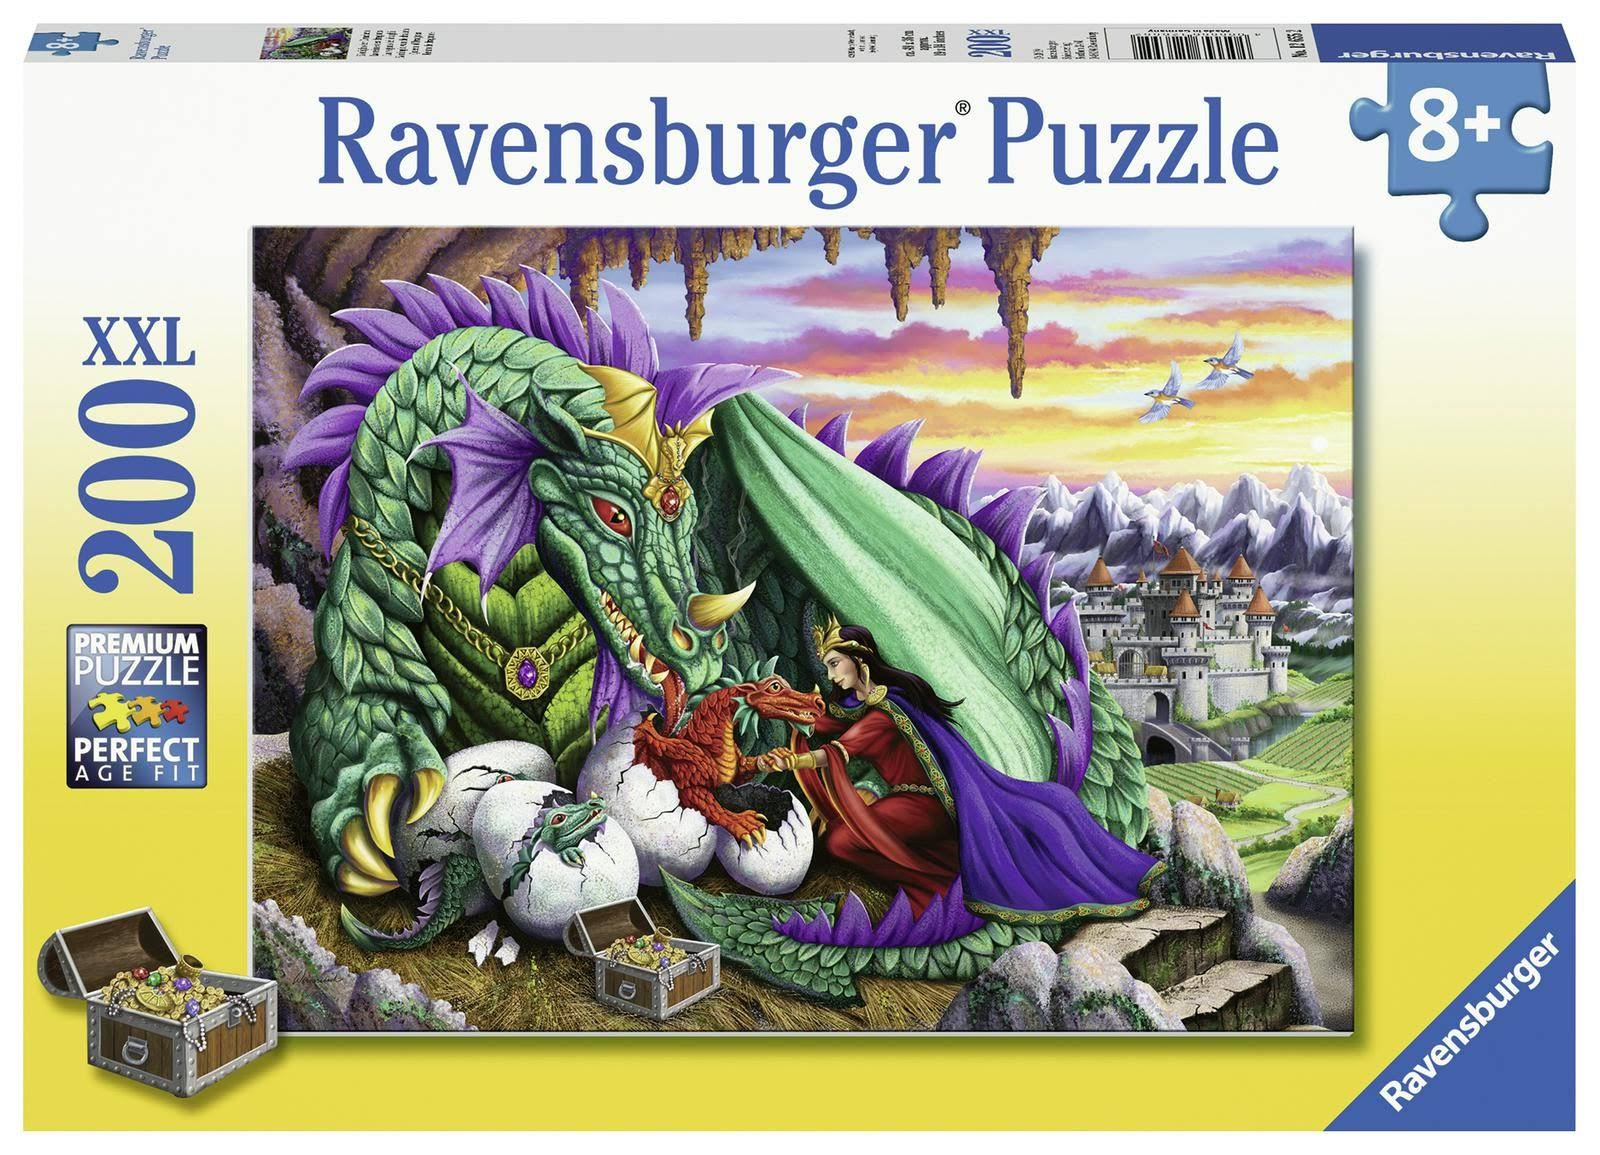 Ravensburger Queen of Dragons Jigsaw Puzzle - 200pcs